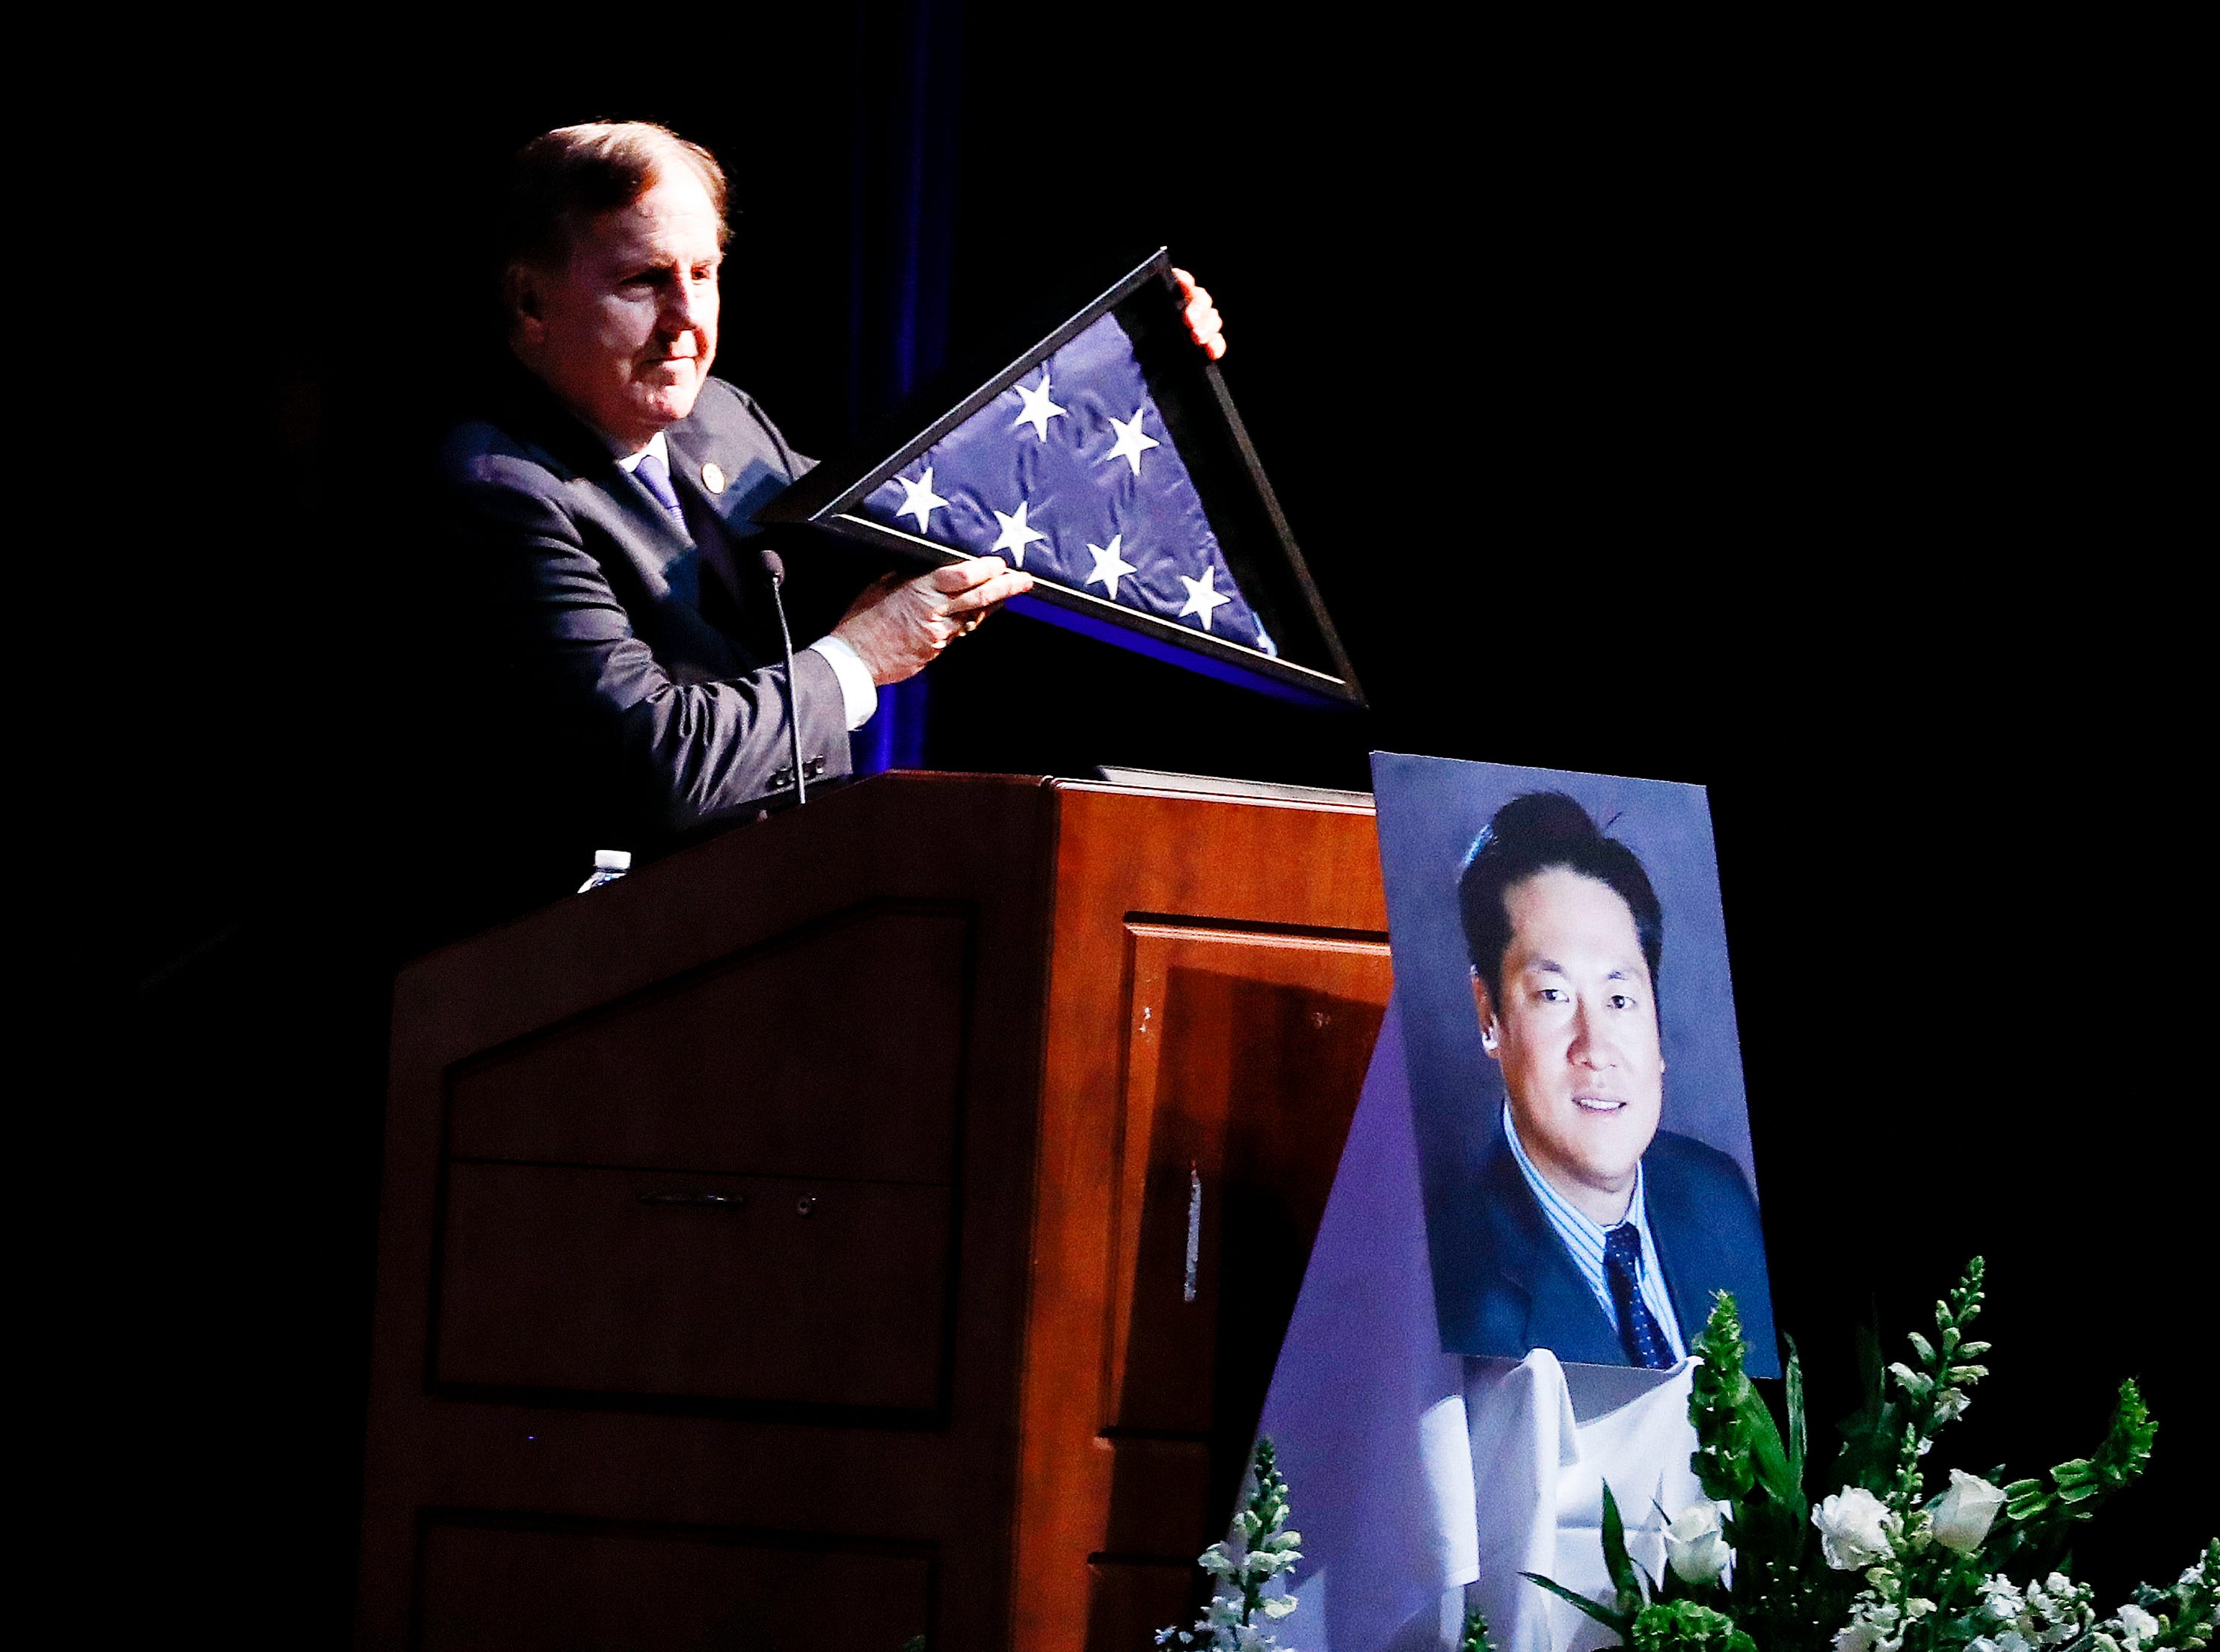 Family friend Congressman Robert Pittenger speaks during the memorial service for Wei Chen, a Memphis businessman who died along with three other people in a plane crash in Georgia.